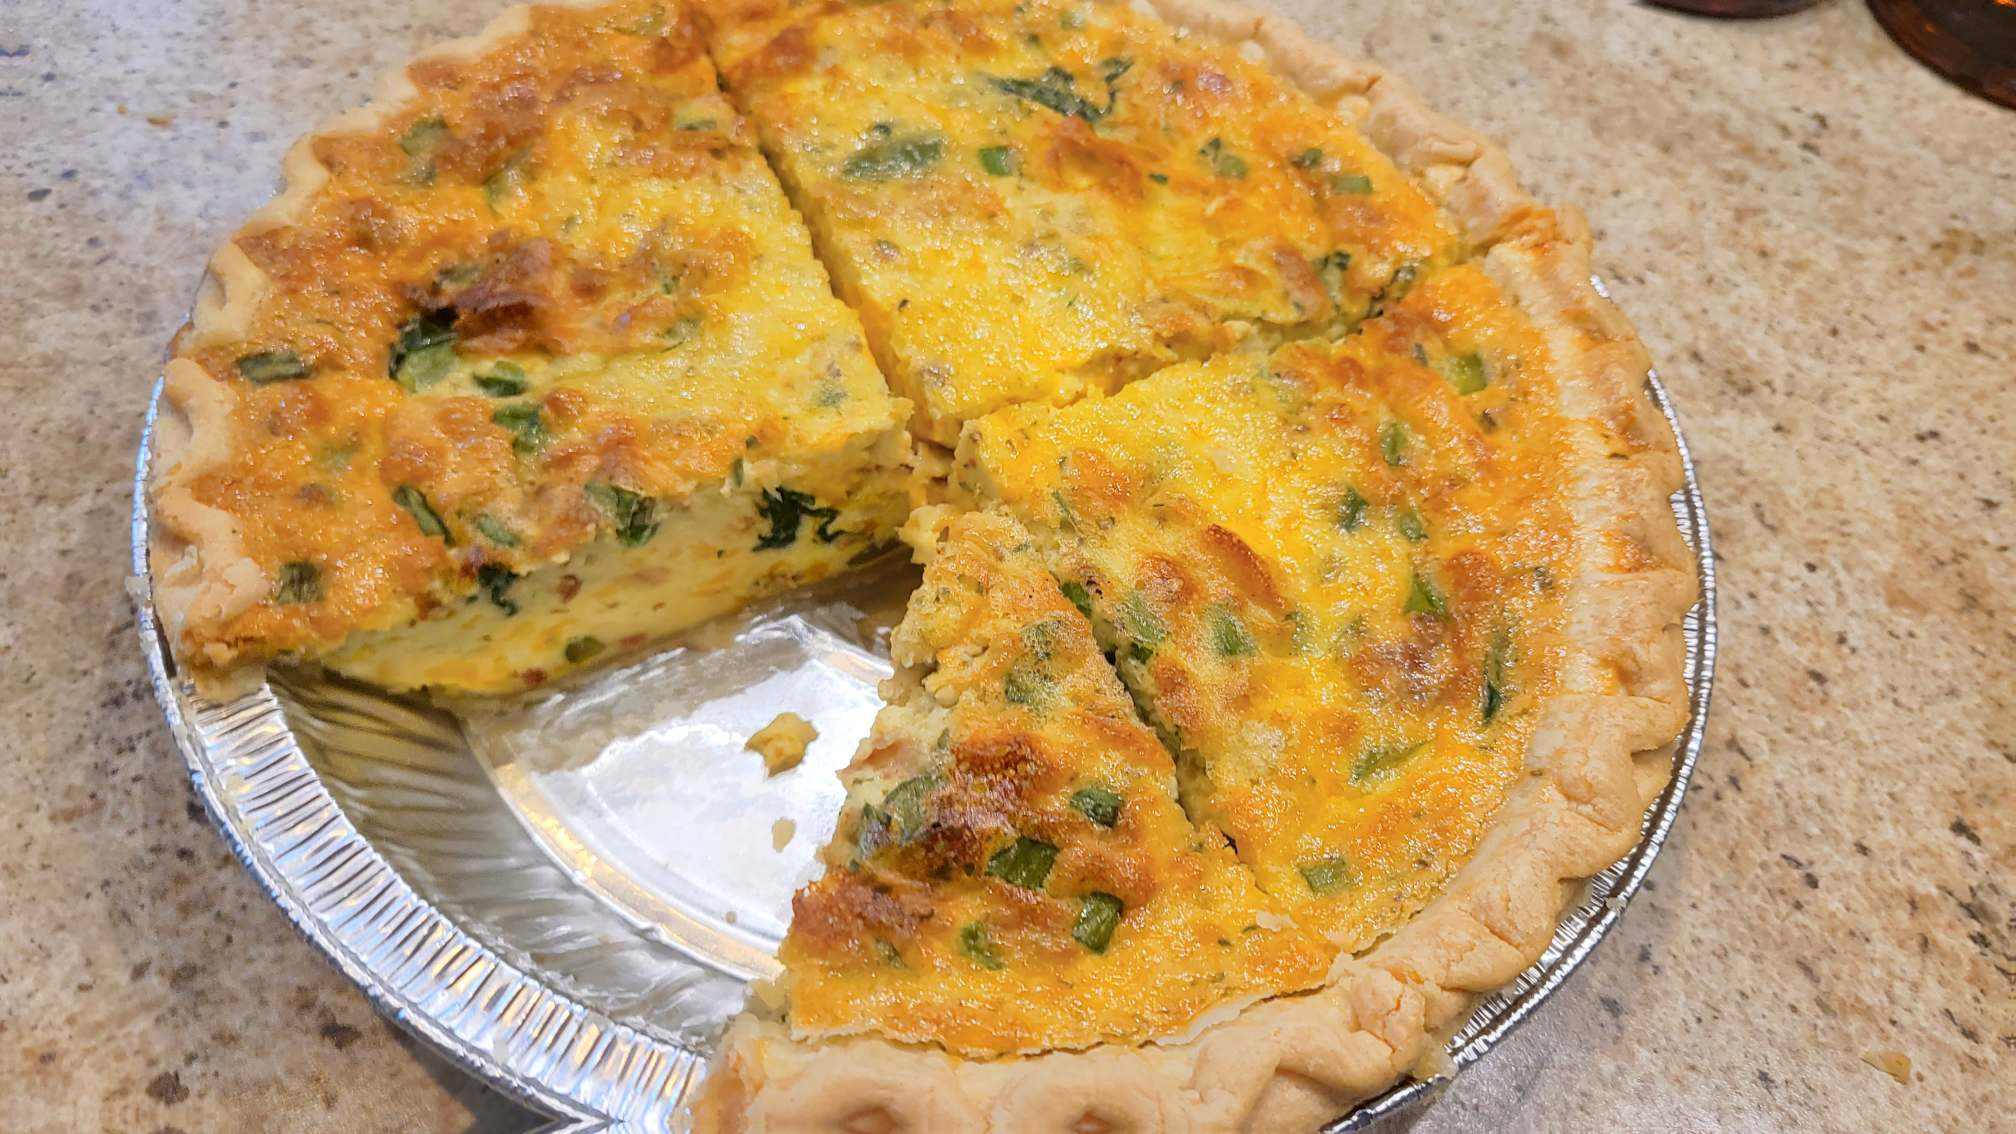 Picture of quiche with slice missing